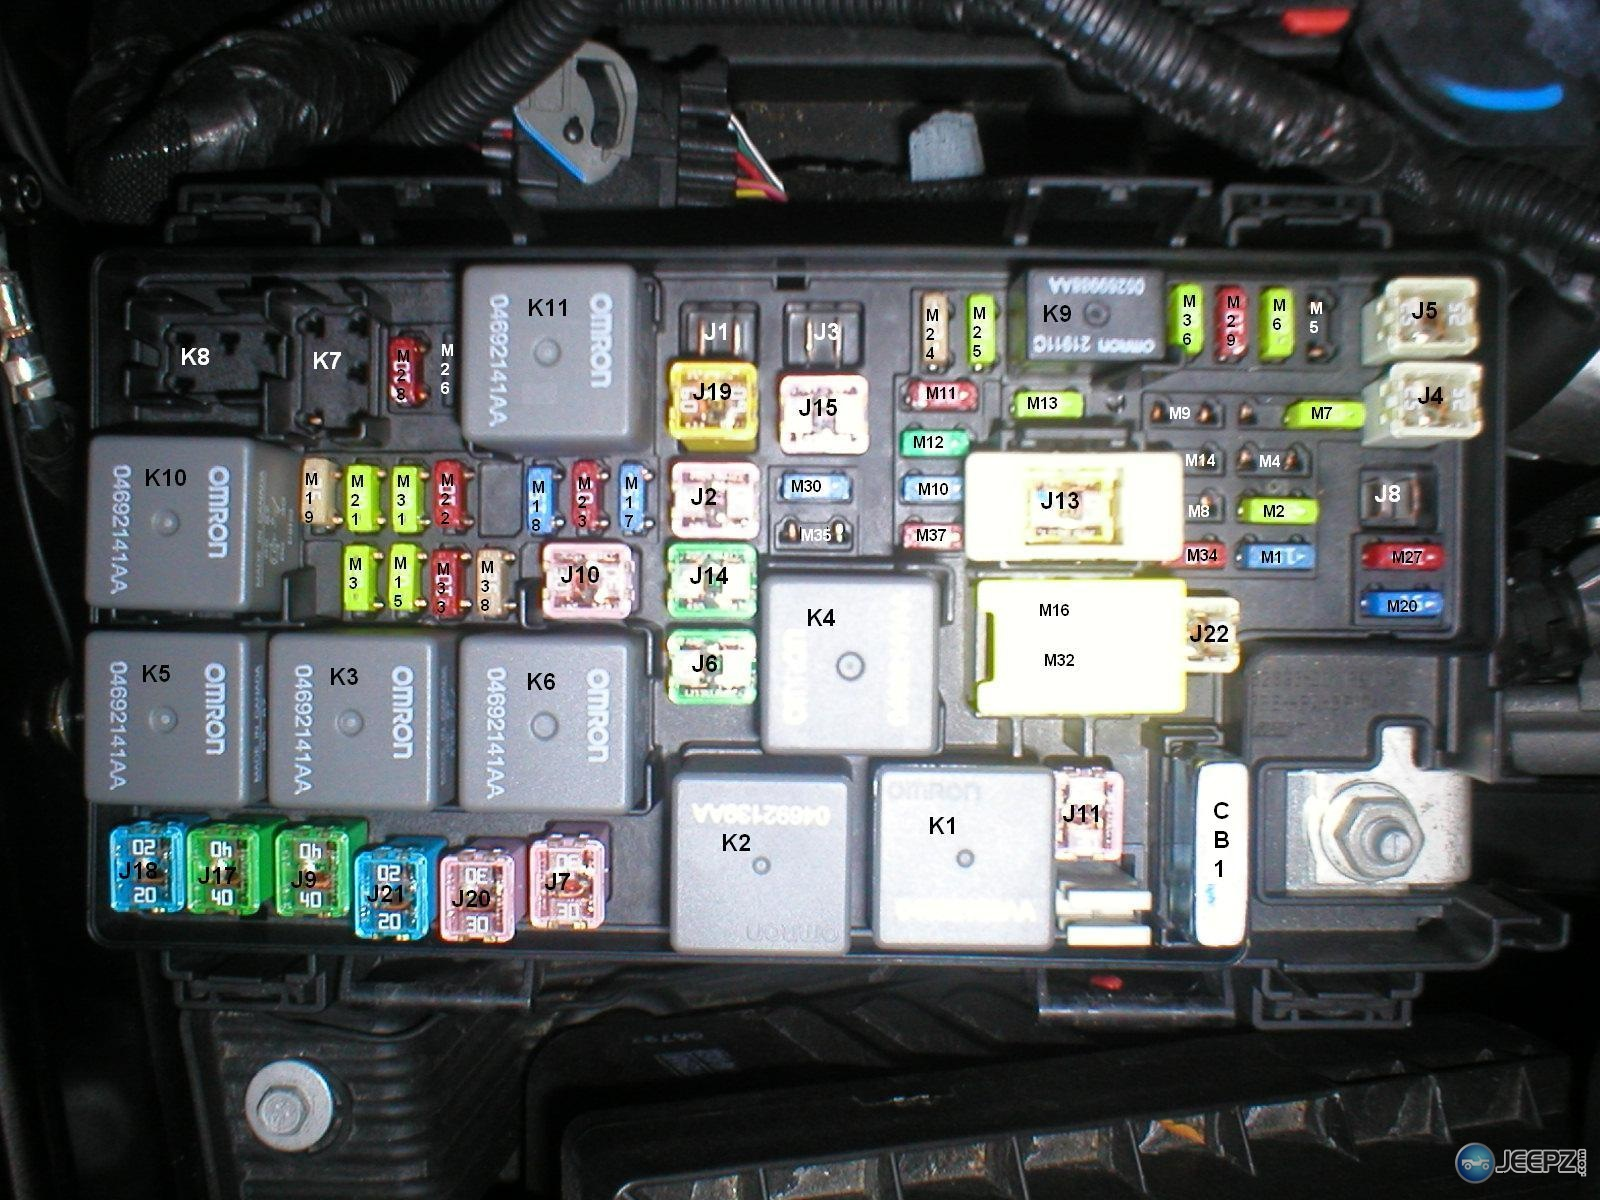 jeep jk 2009 fuse map layout diagram 2005 Jeep Liberty Fuse Box Diagram jeep jk 2009 fuse map layout diagram jkfusebox2009 jpg